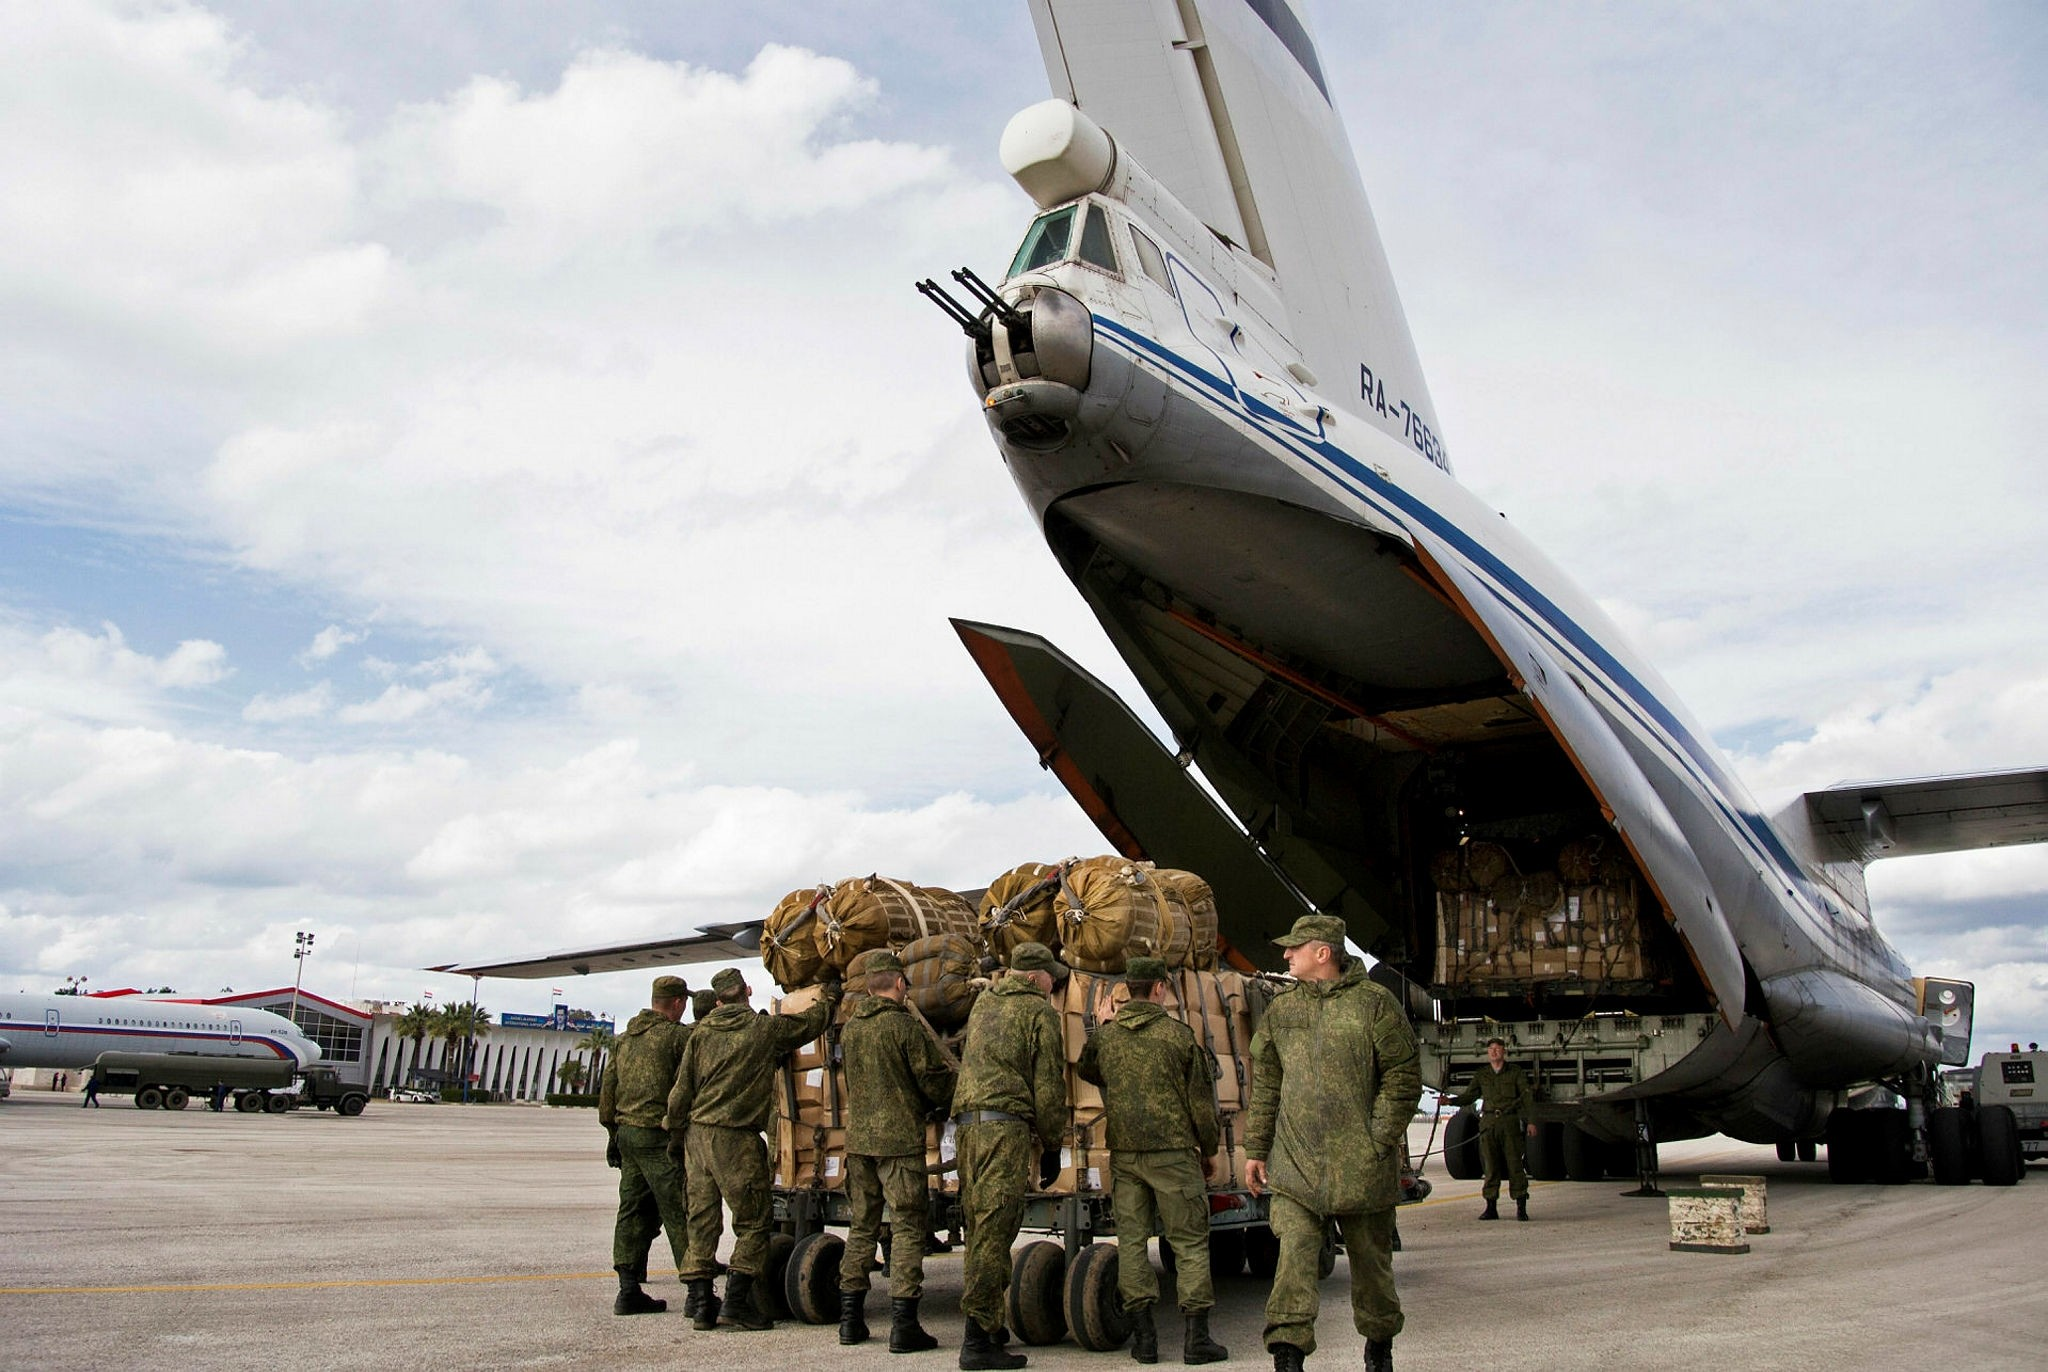 In this Wednesday, Jan. 20, 2016 file photo, Russian air force personnel prepare to load humanitarian cargo on board a Syrian Il-76 plane at Hemeimeem air base in Syria. (AP Photo)